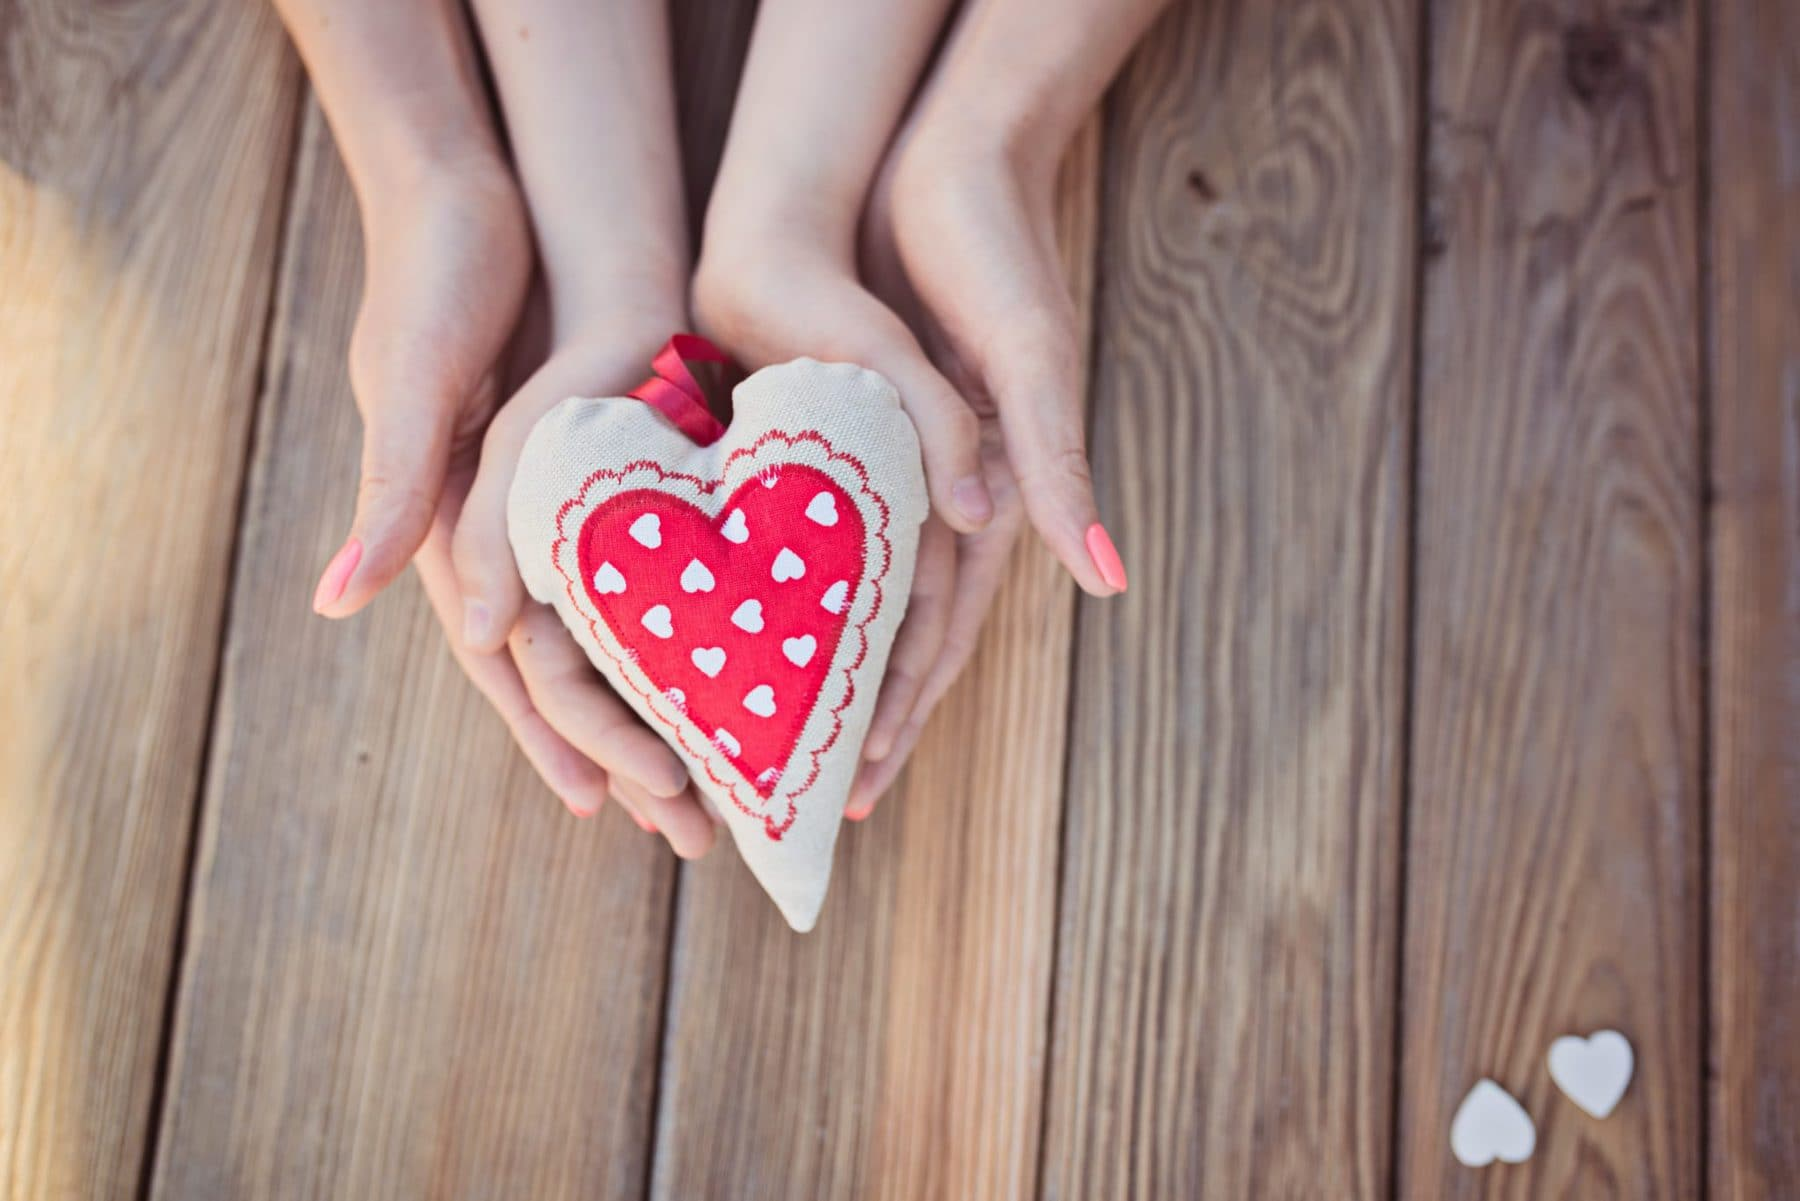 Child and mother's hands holding heart over a wooden table. Mothers Day, health care concept.